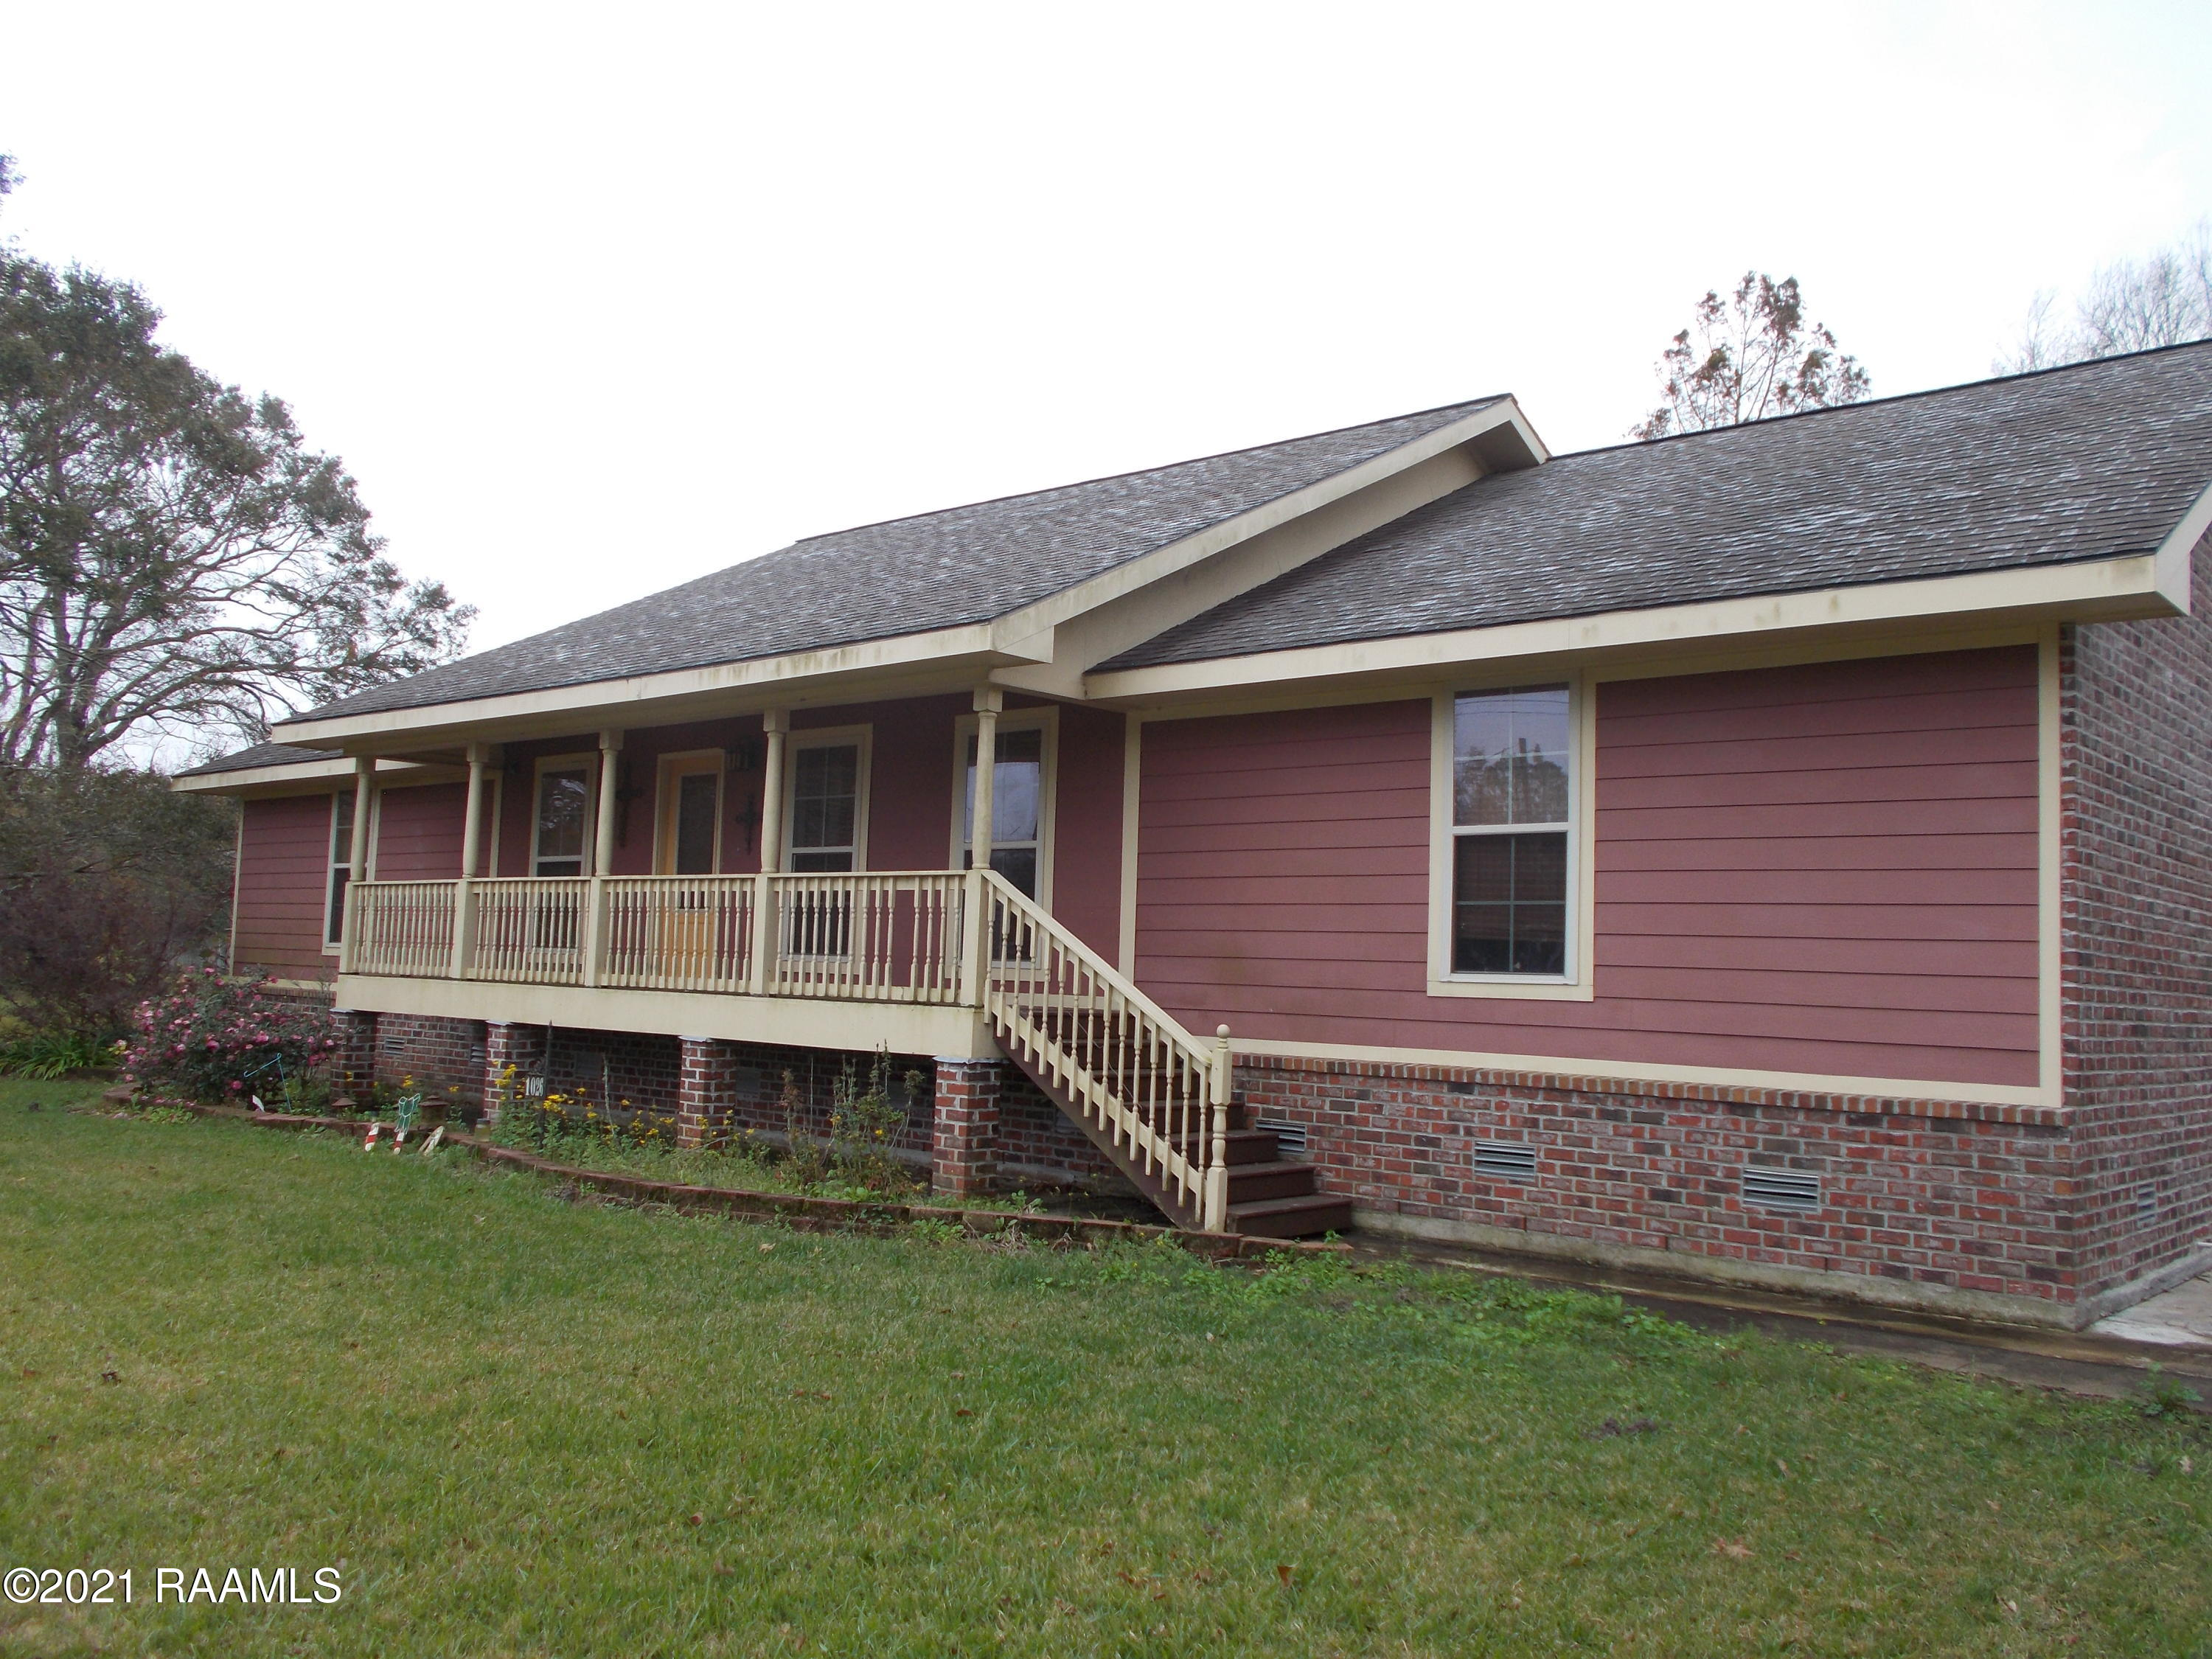 1026 Monte Blanc Drive S, Abbeville, LA 70510 Photo #3